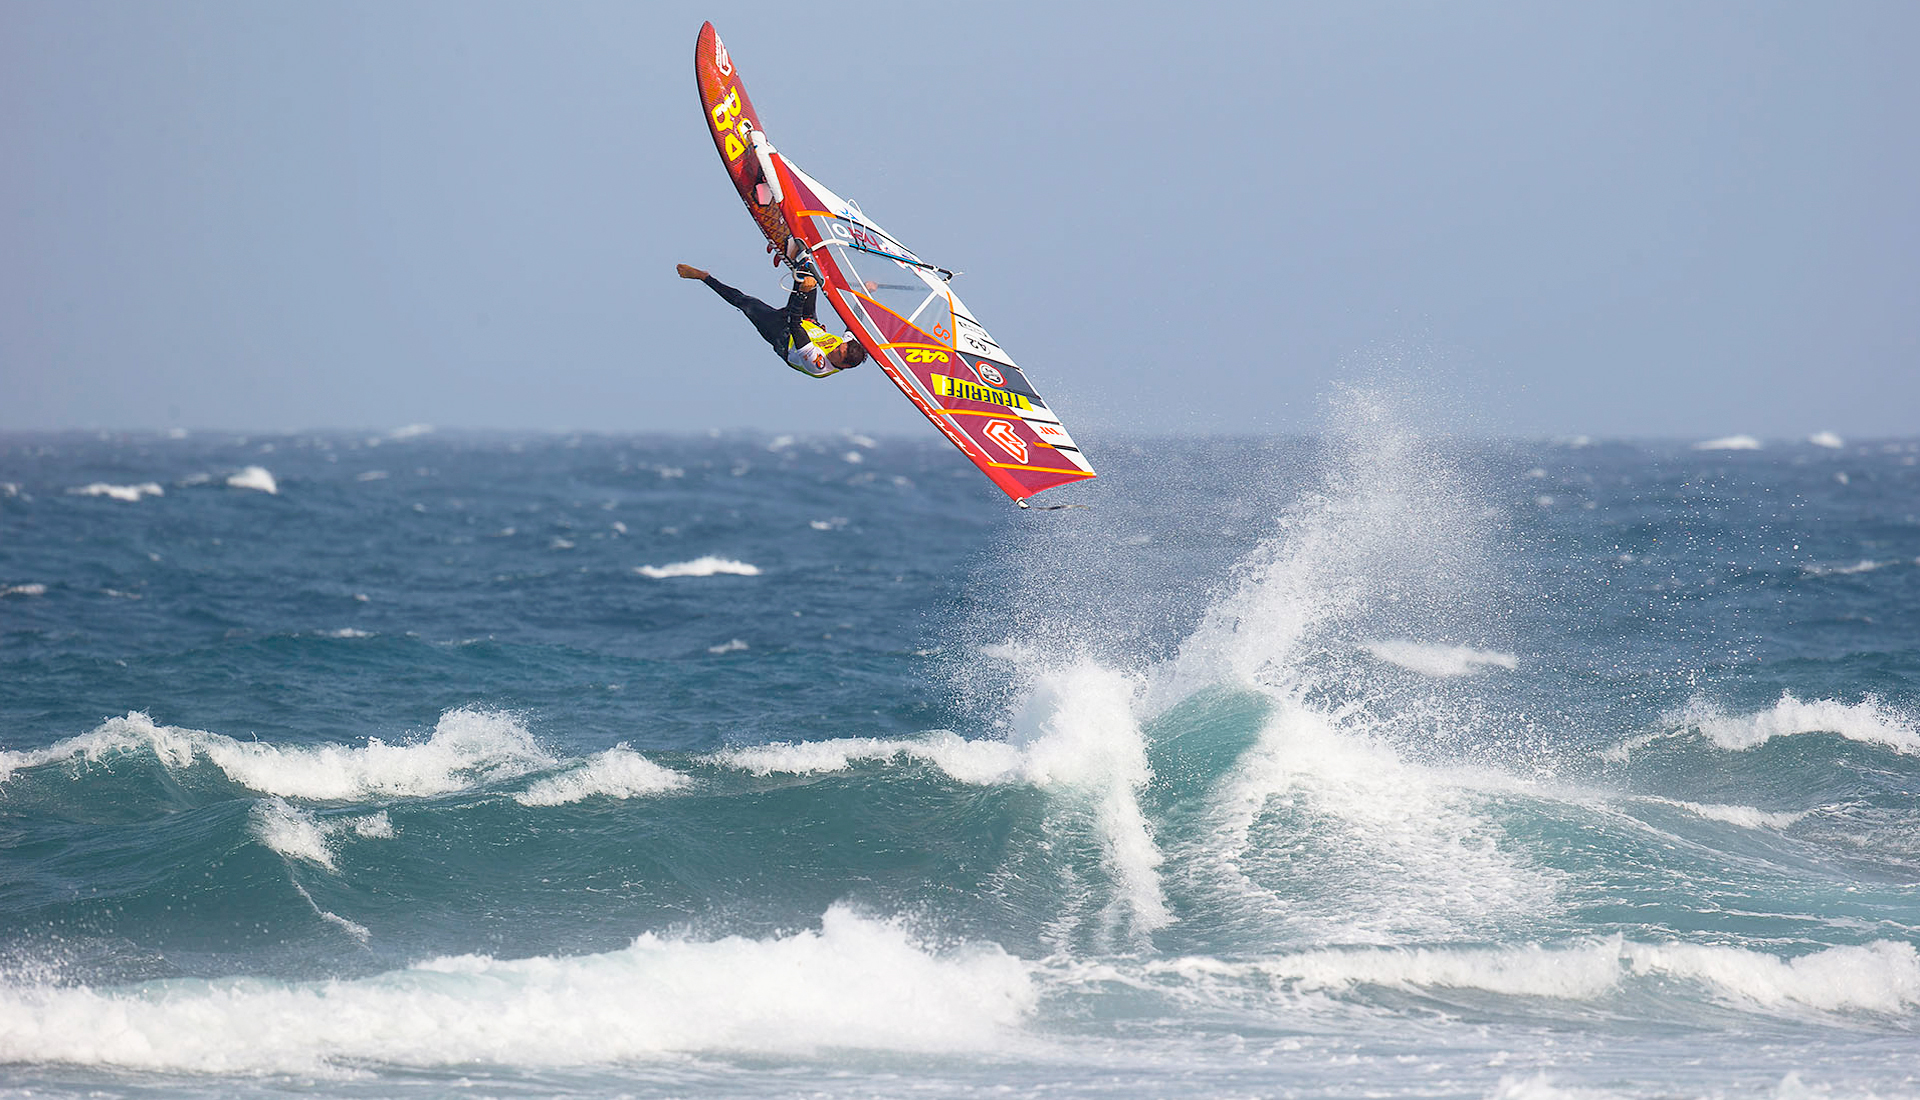 WET Watersports News, surf, Surfing, kite, kitesurf, boards, kiteboarding, kitesurfing, kiteboard, windsurf, water sports